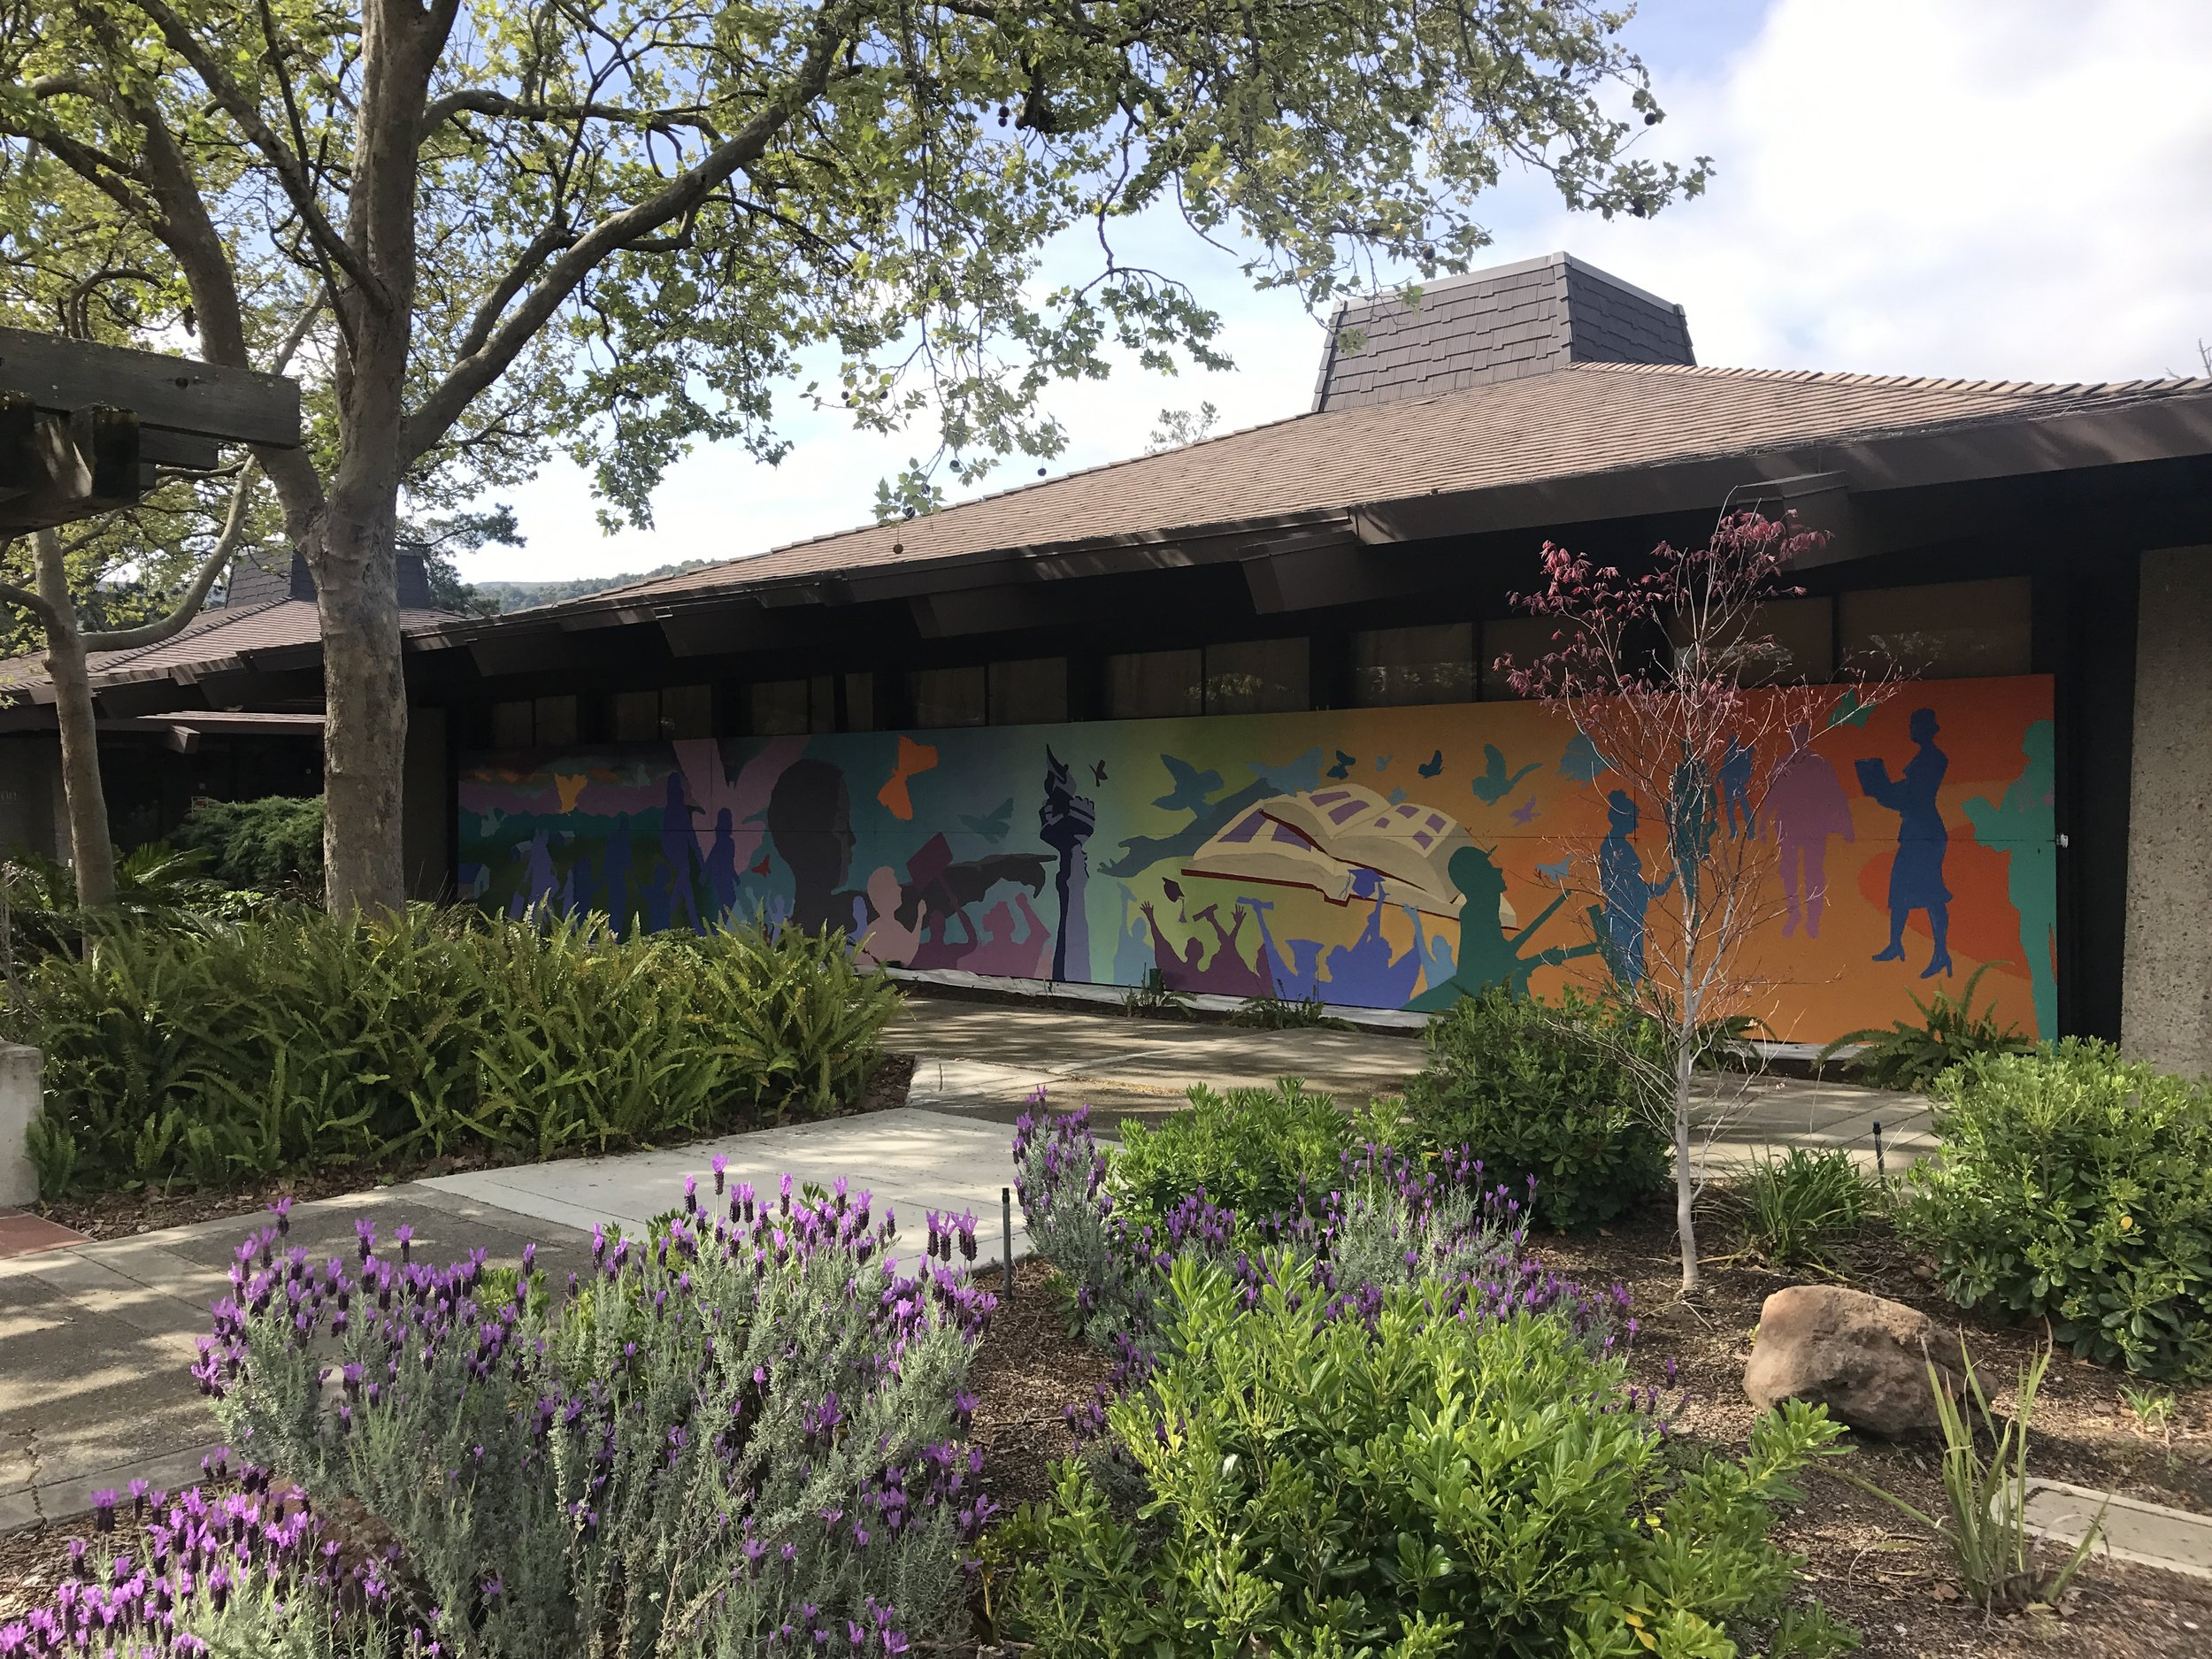 Ms. Nguyen commissioned a mural by artists and students who are DREAMers at Foothill College.